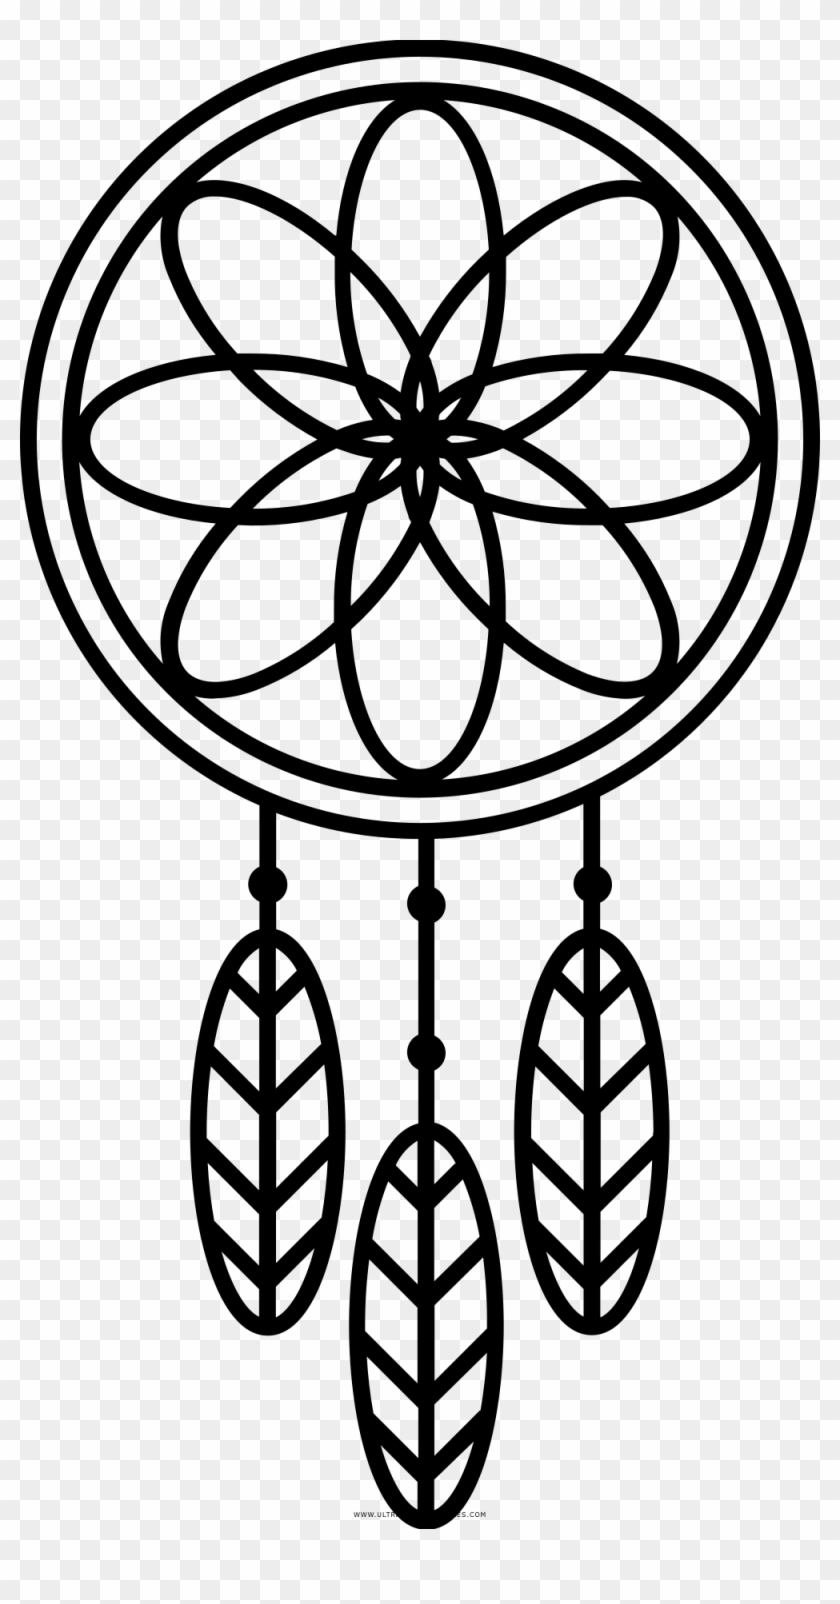 Dreamcatcher Coloring Page Round Geometric Patterns Png Transparent Png 1000x1862 934349 Pngfind